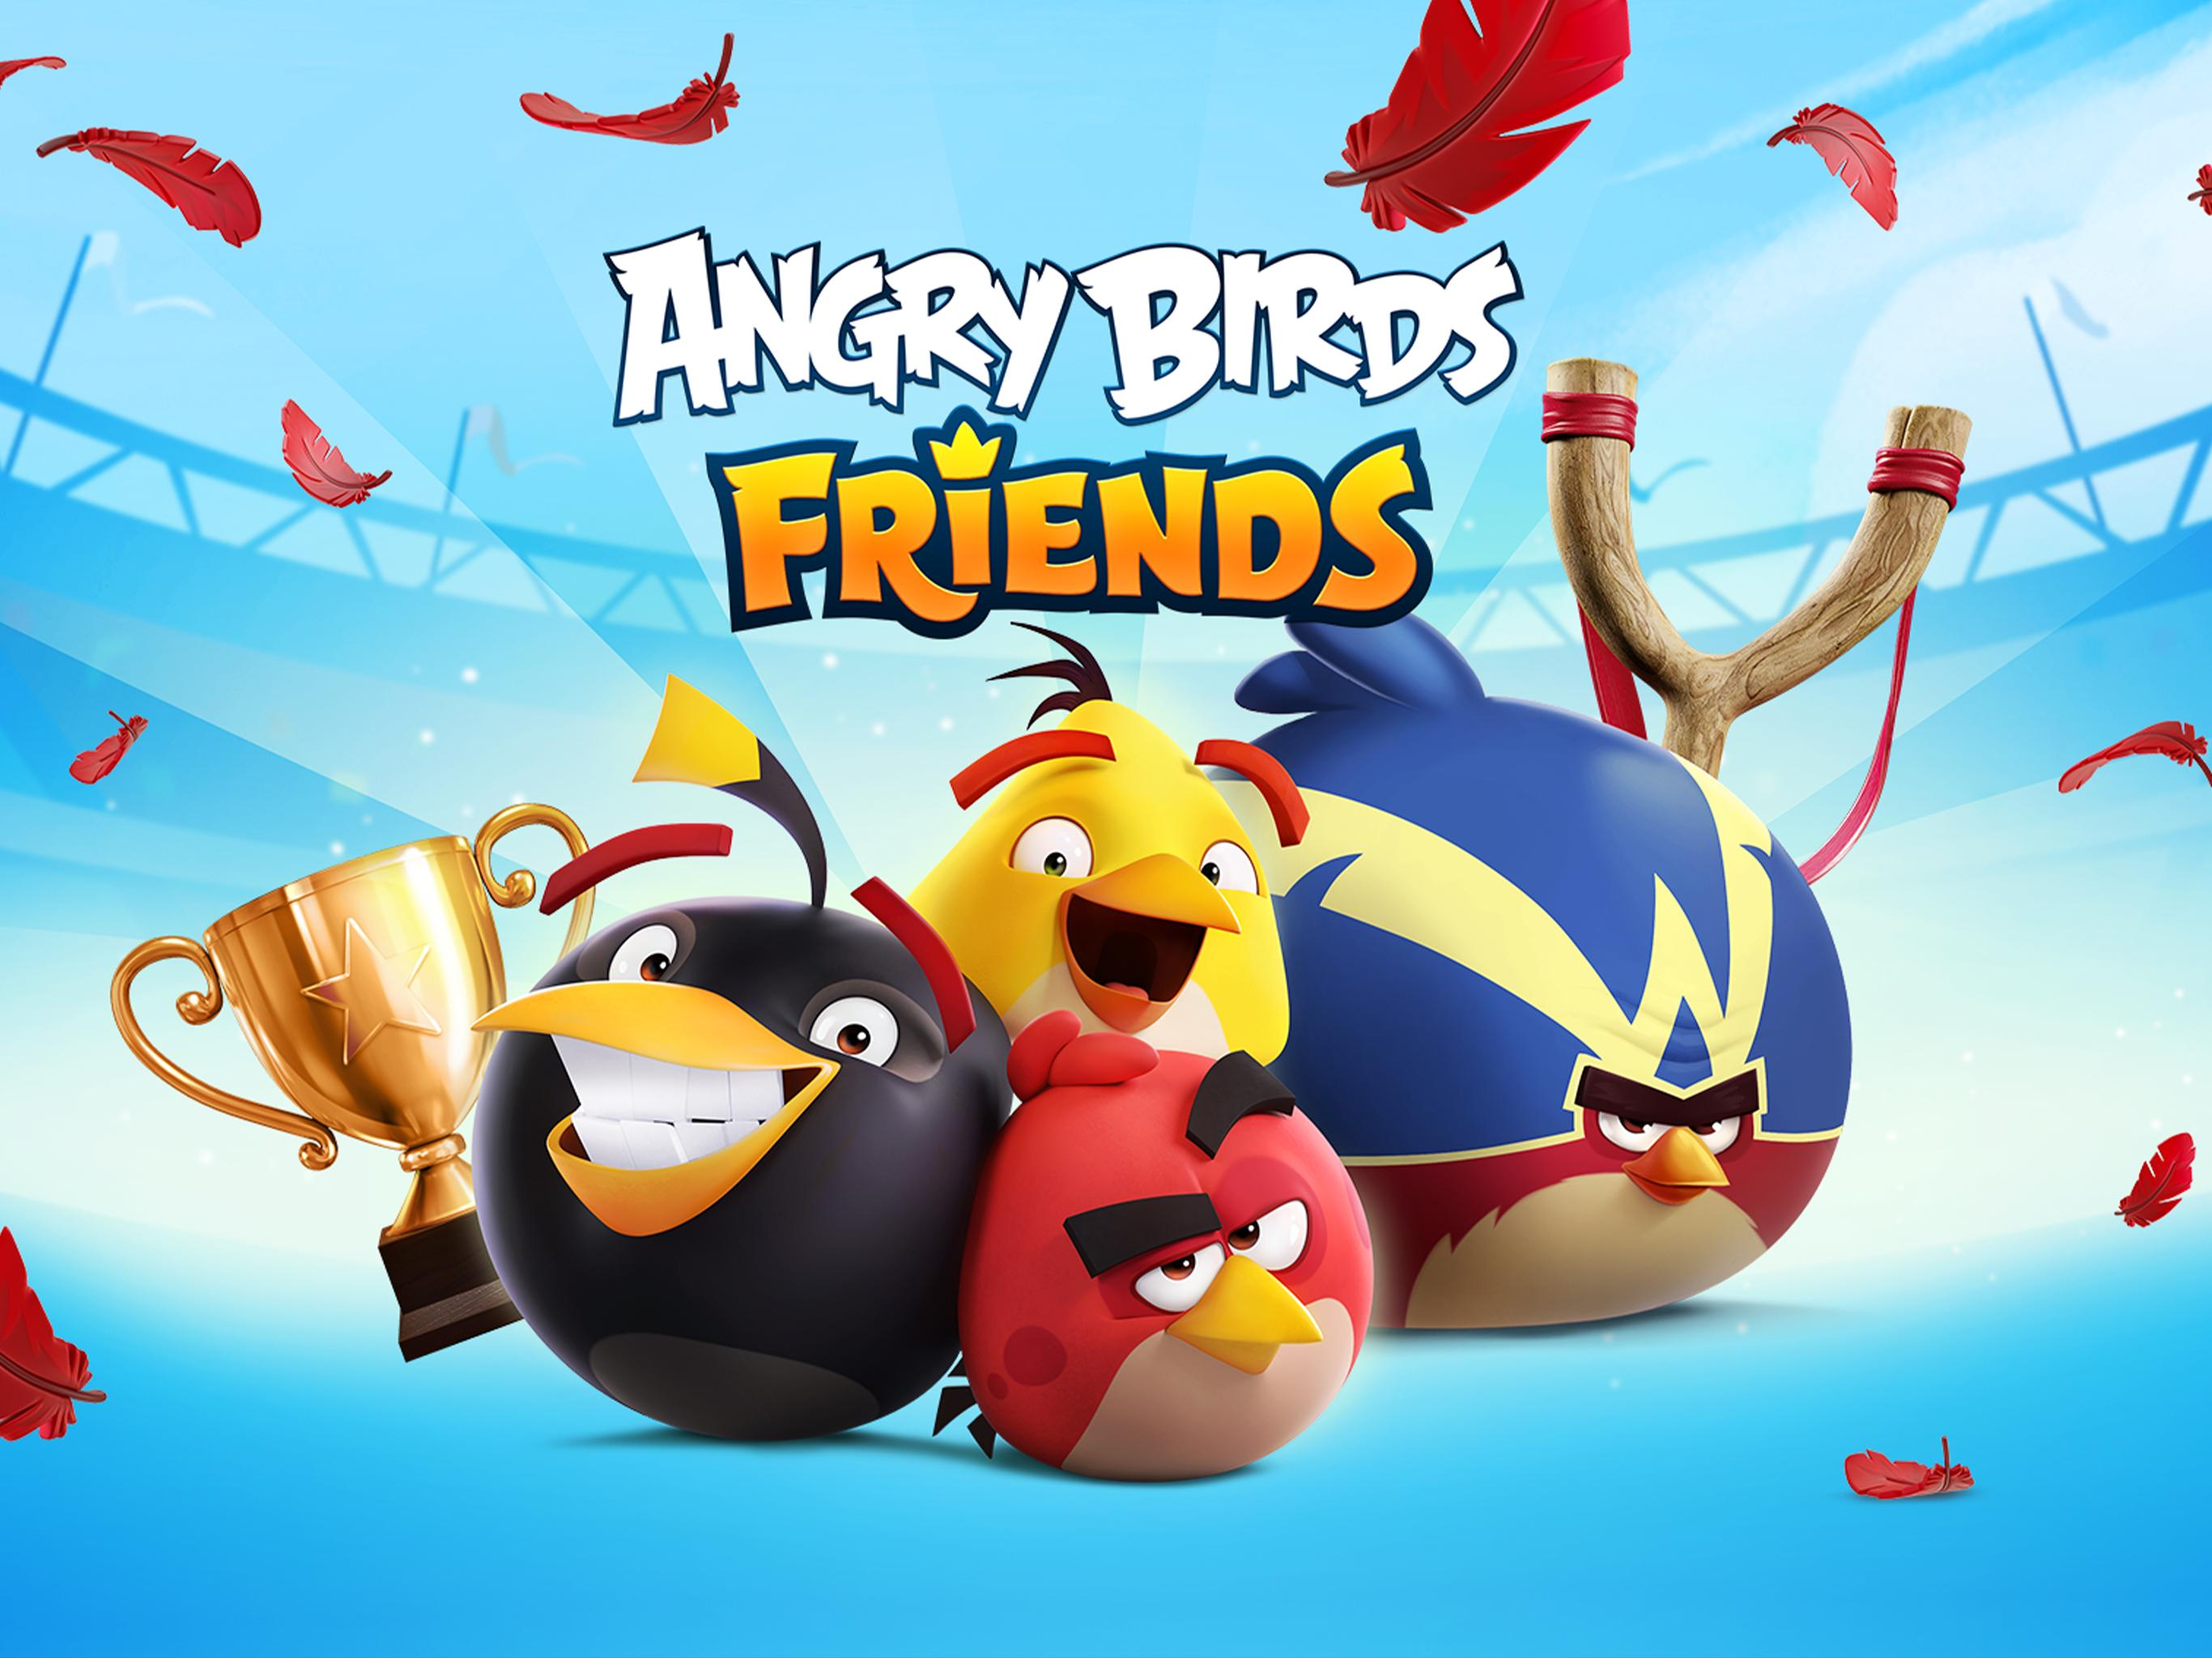 Angry Birds Friends 9.7.2 Screenshot 14